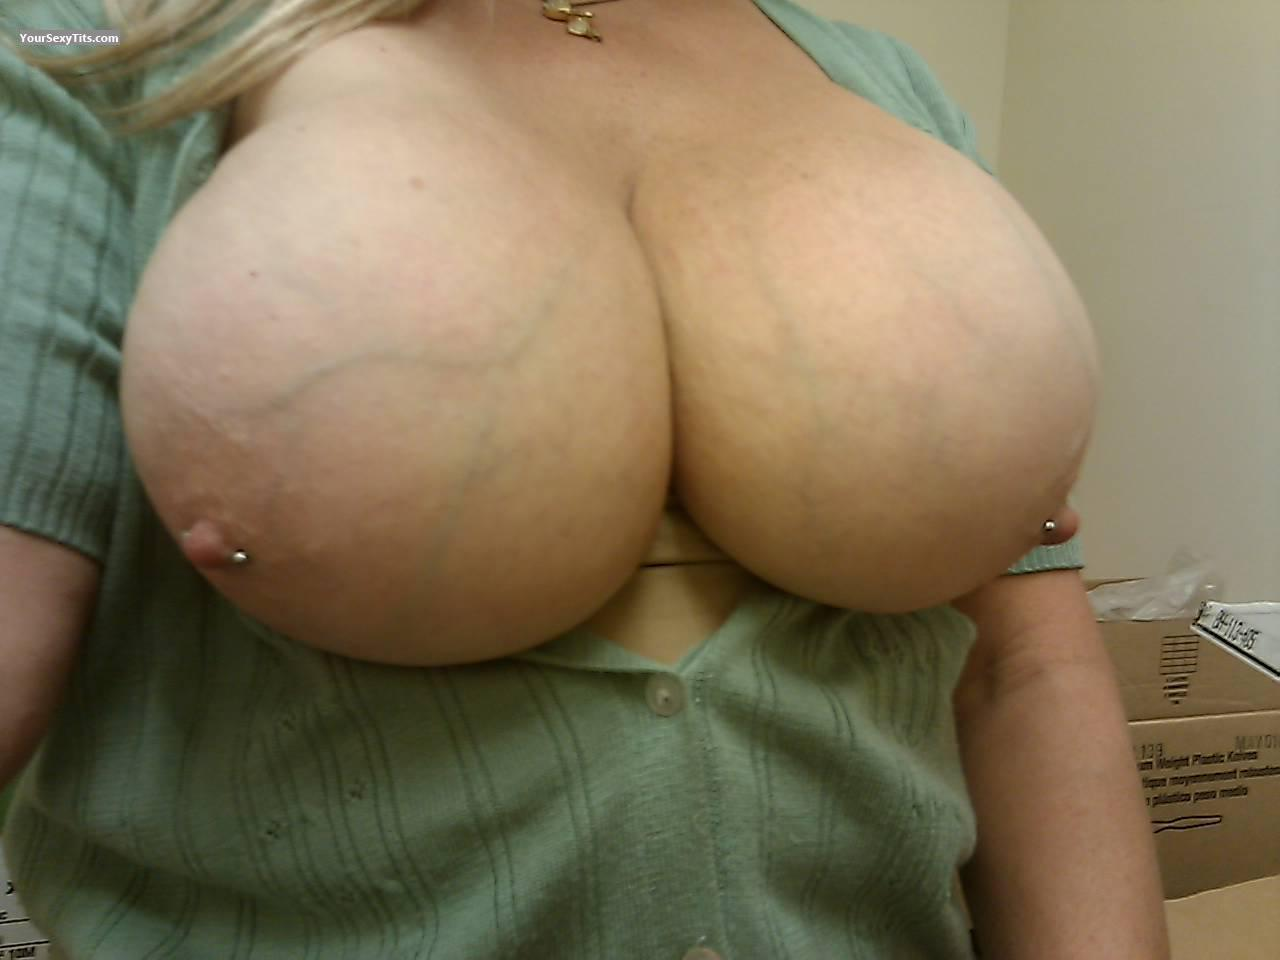 My Very big Tits Selfie by Pix